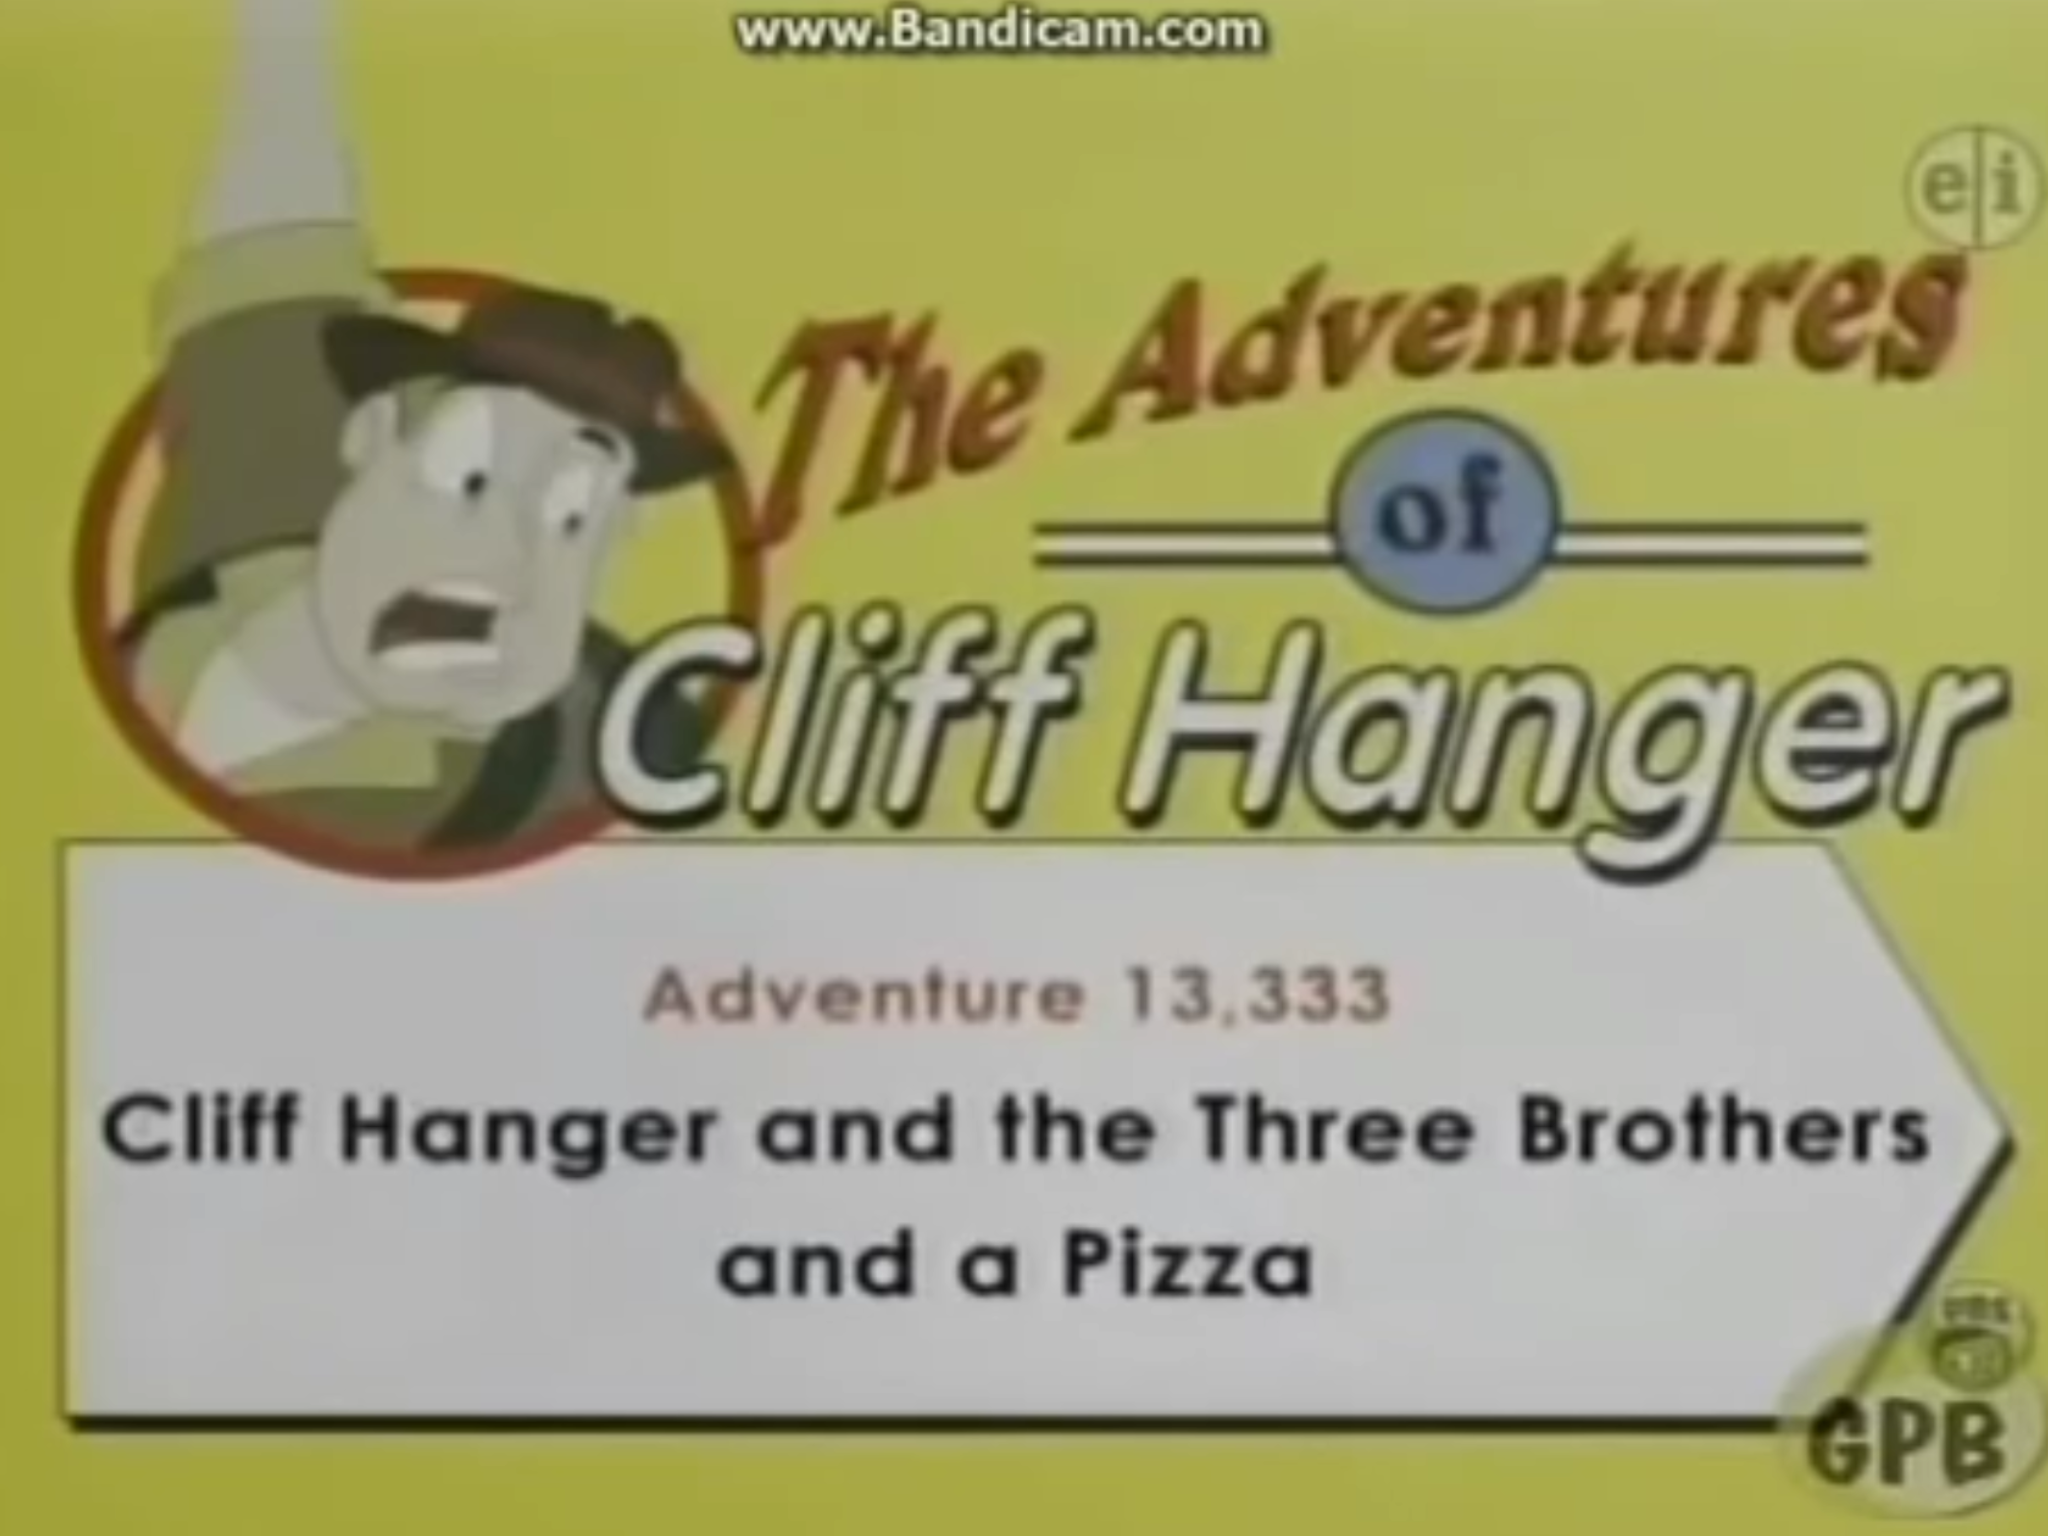 Cliff Hanger and the Three Brothers and a Pizza